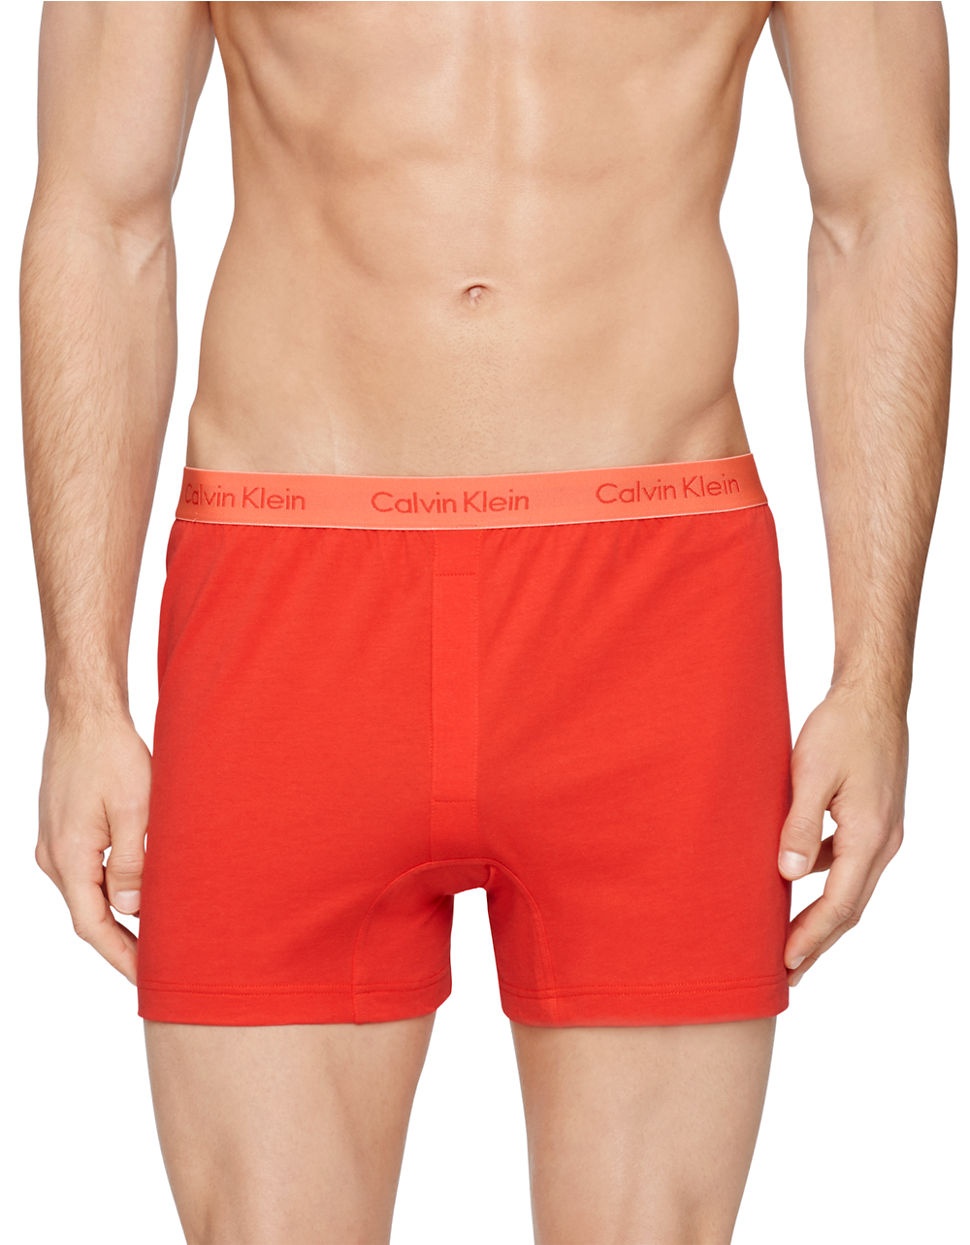 calvin klein slim fit knit boxer shorts in red for men lyst. Black Bedroom Furniture Sets. Home Design Ideas